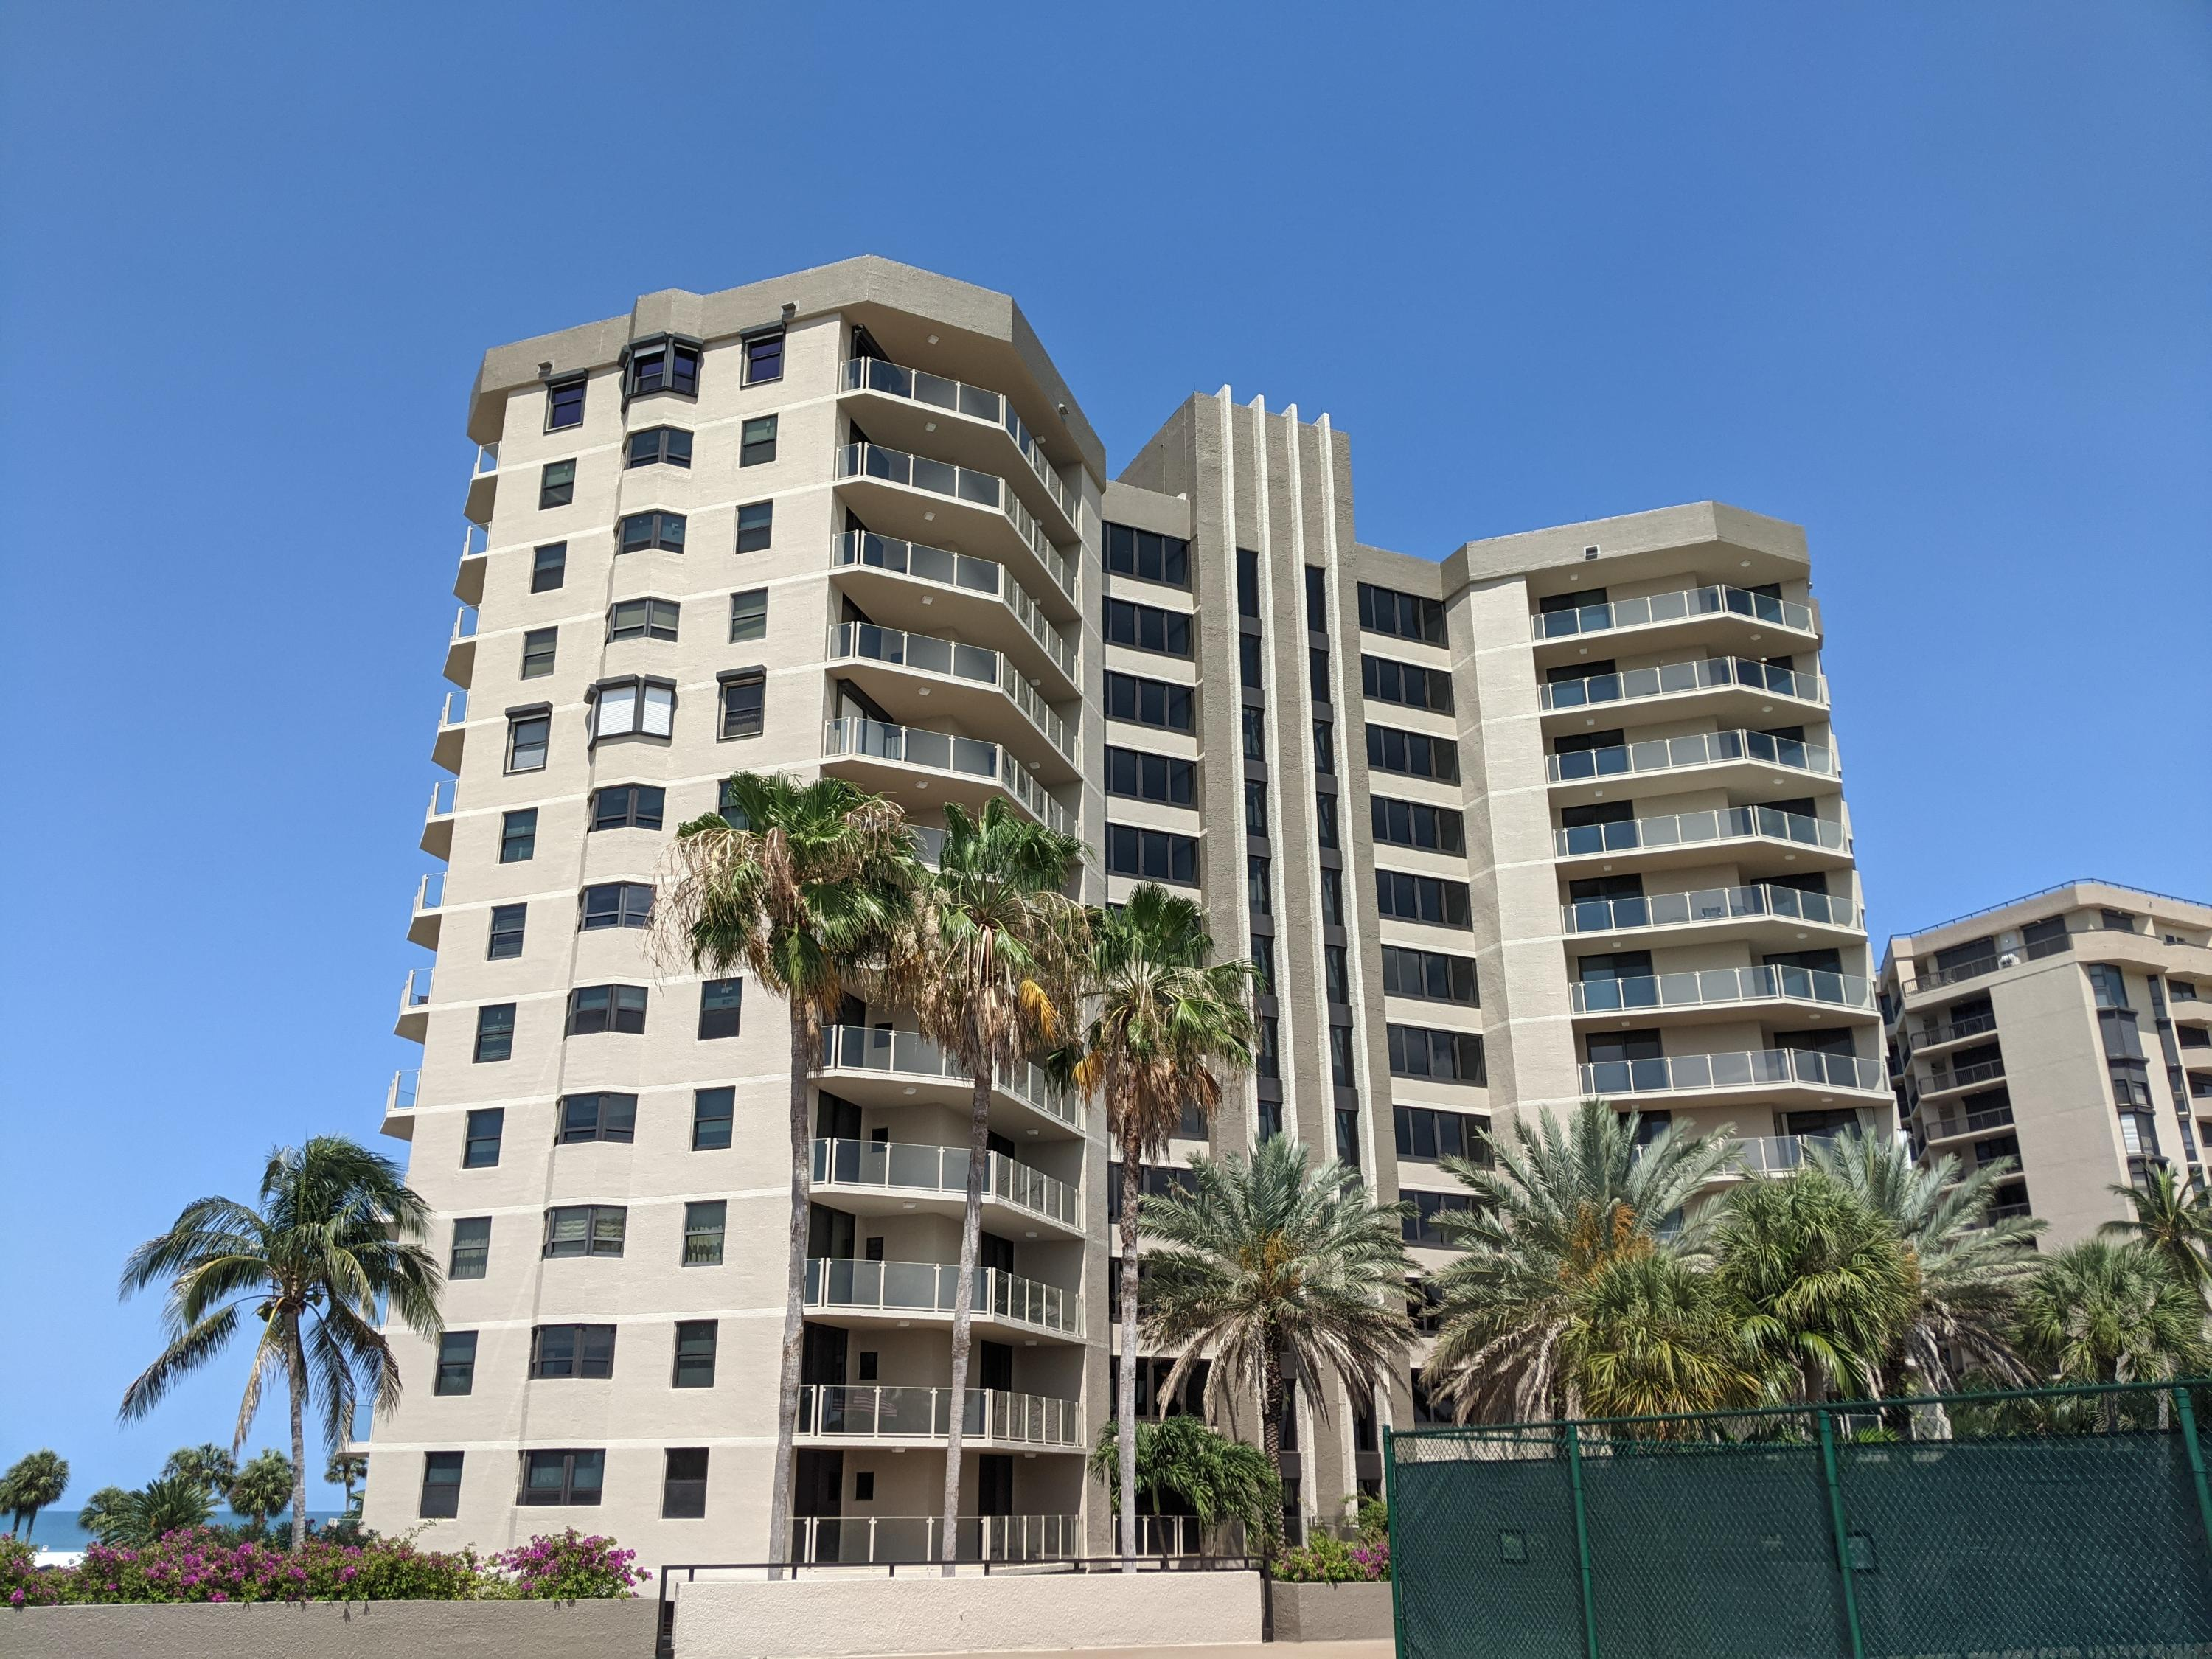 Spacious and luxurious turn-key Condominium on the beautiful waters of the Gulf of Mexico. This bright 2275 sq. ft. unit features 2 large balconies, internet, and walk-in closets. The hot water tank was replaced in 2020. Amenities include large pool, spa, sauna, tennis, pickleball, shuffle board, covered parking, and incredible beach. Must see well maintained building, and the unit was never rented.